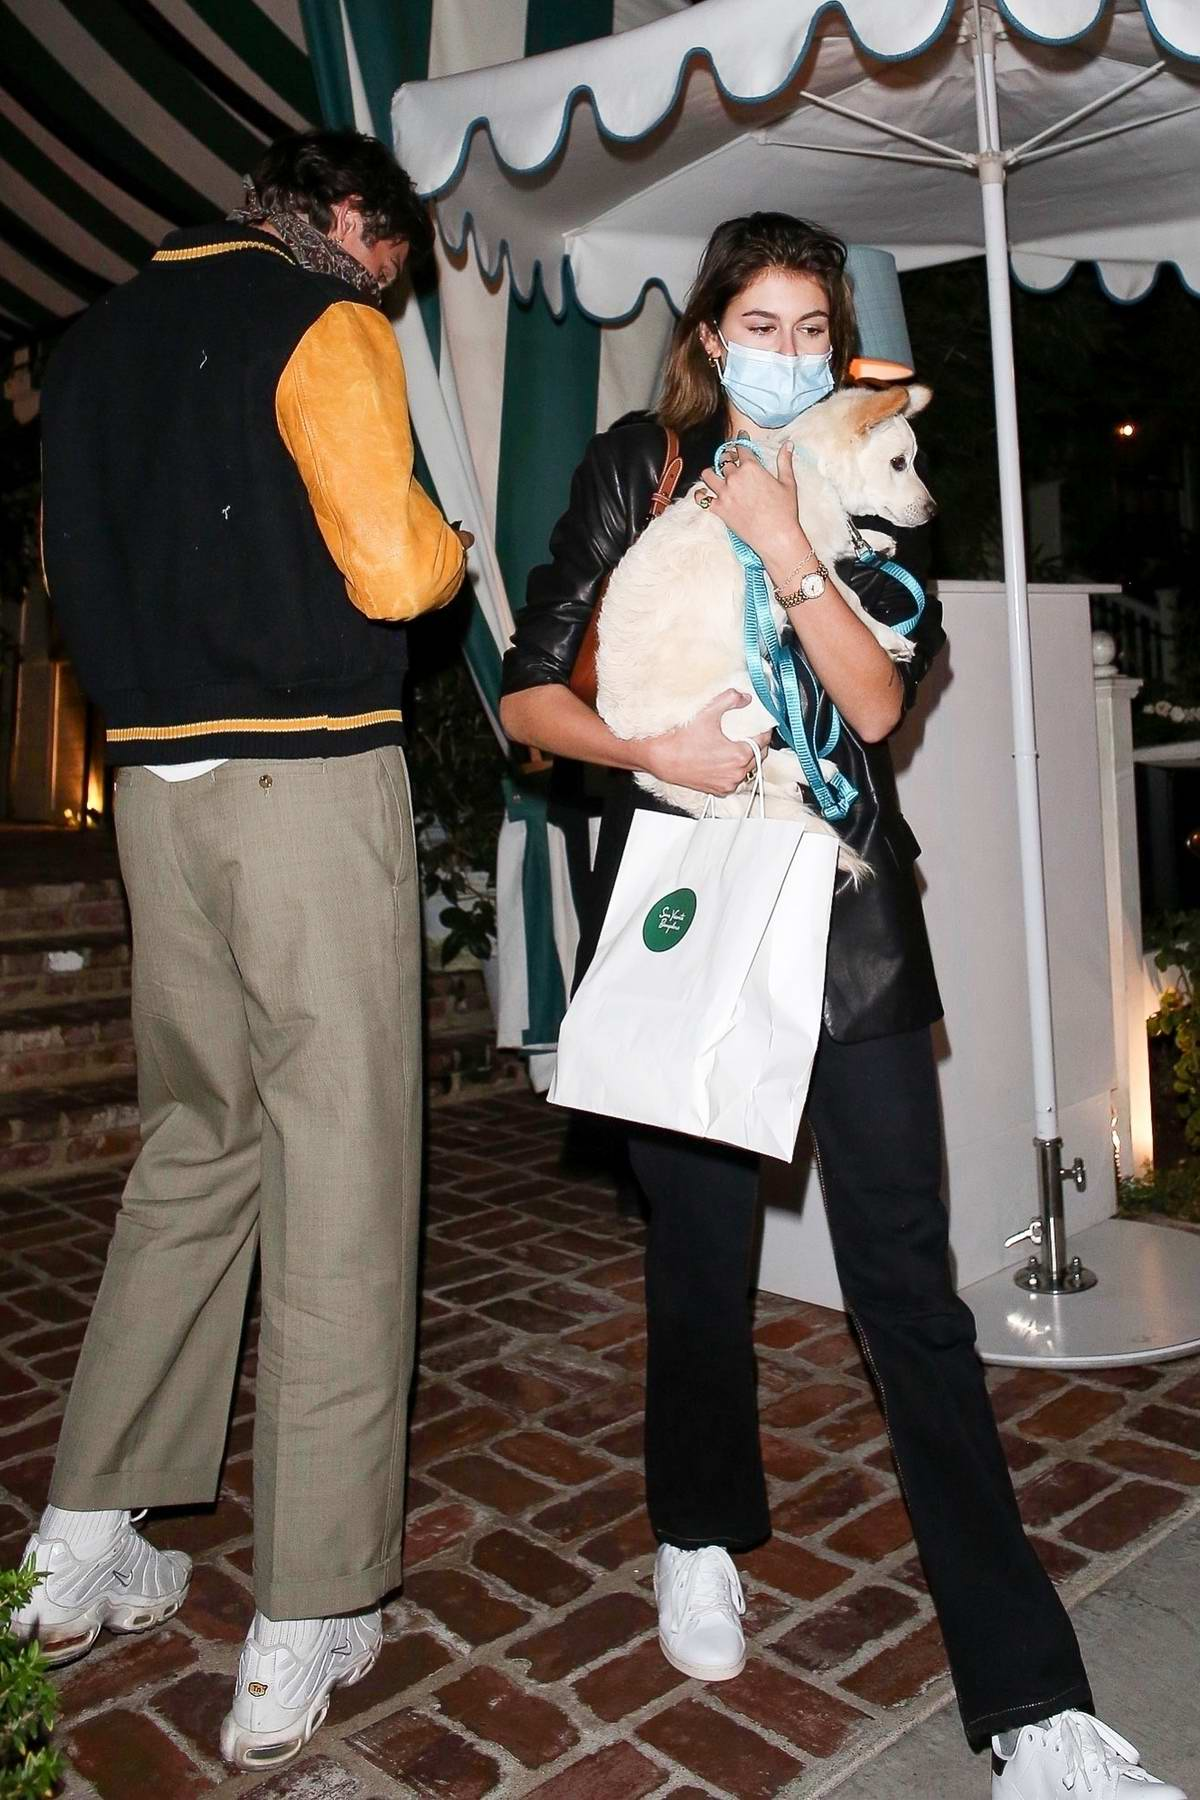 Kaia Gerber and Jacob Elordi look stylish while out for a dinner date at San Vicente Bungalows in West Hollywood, California